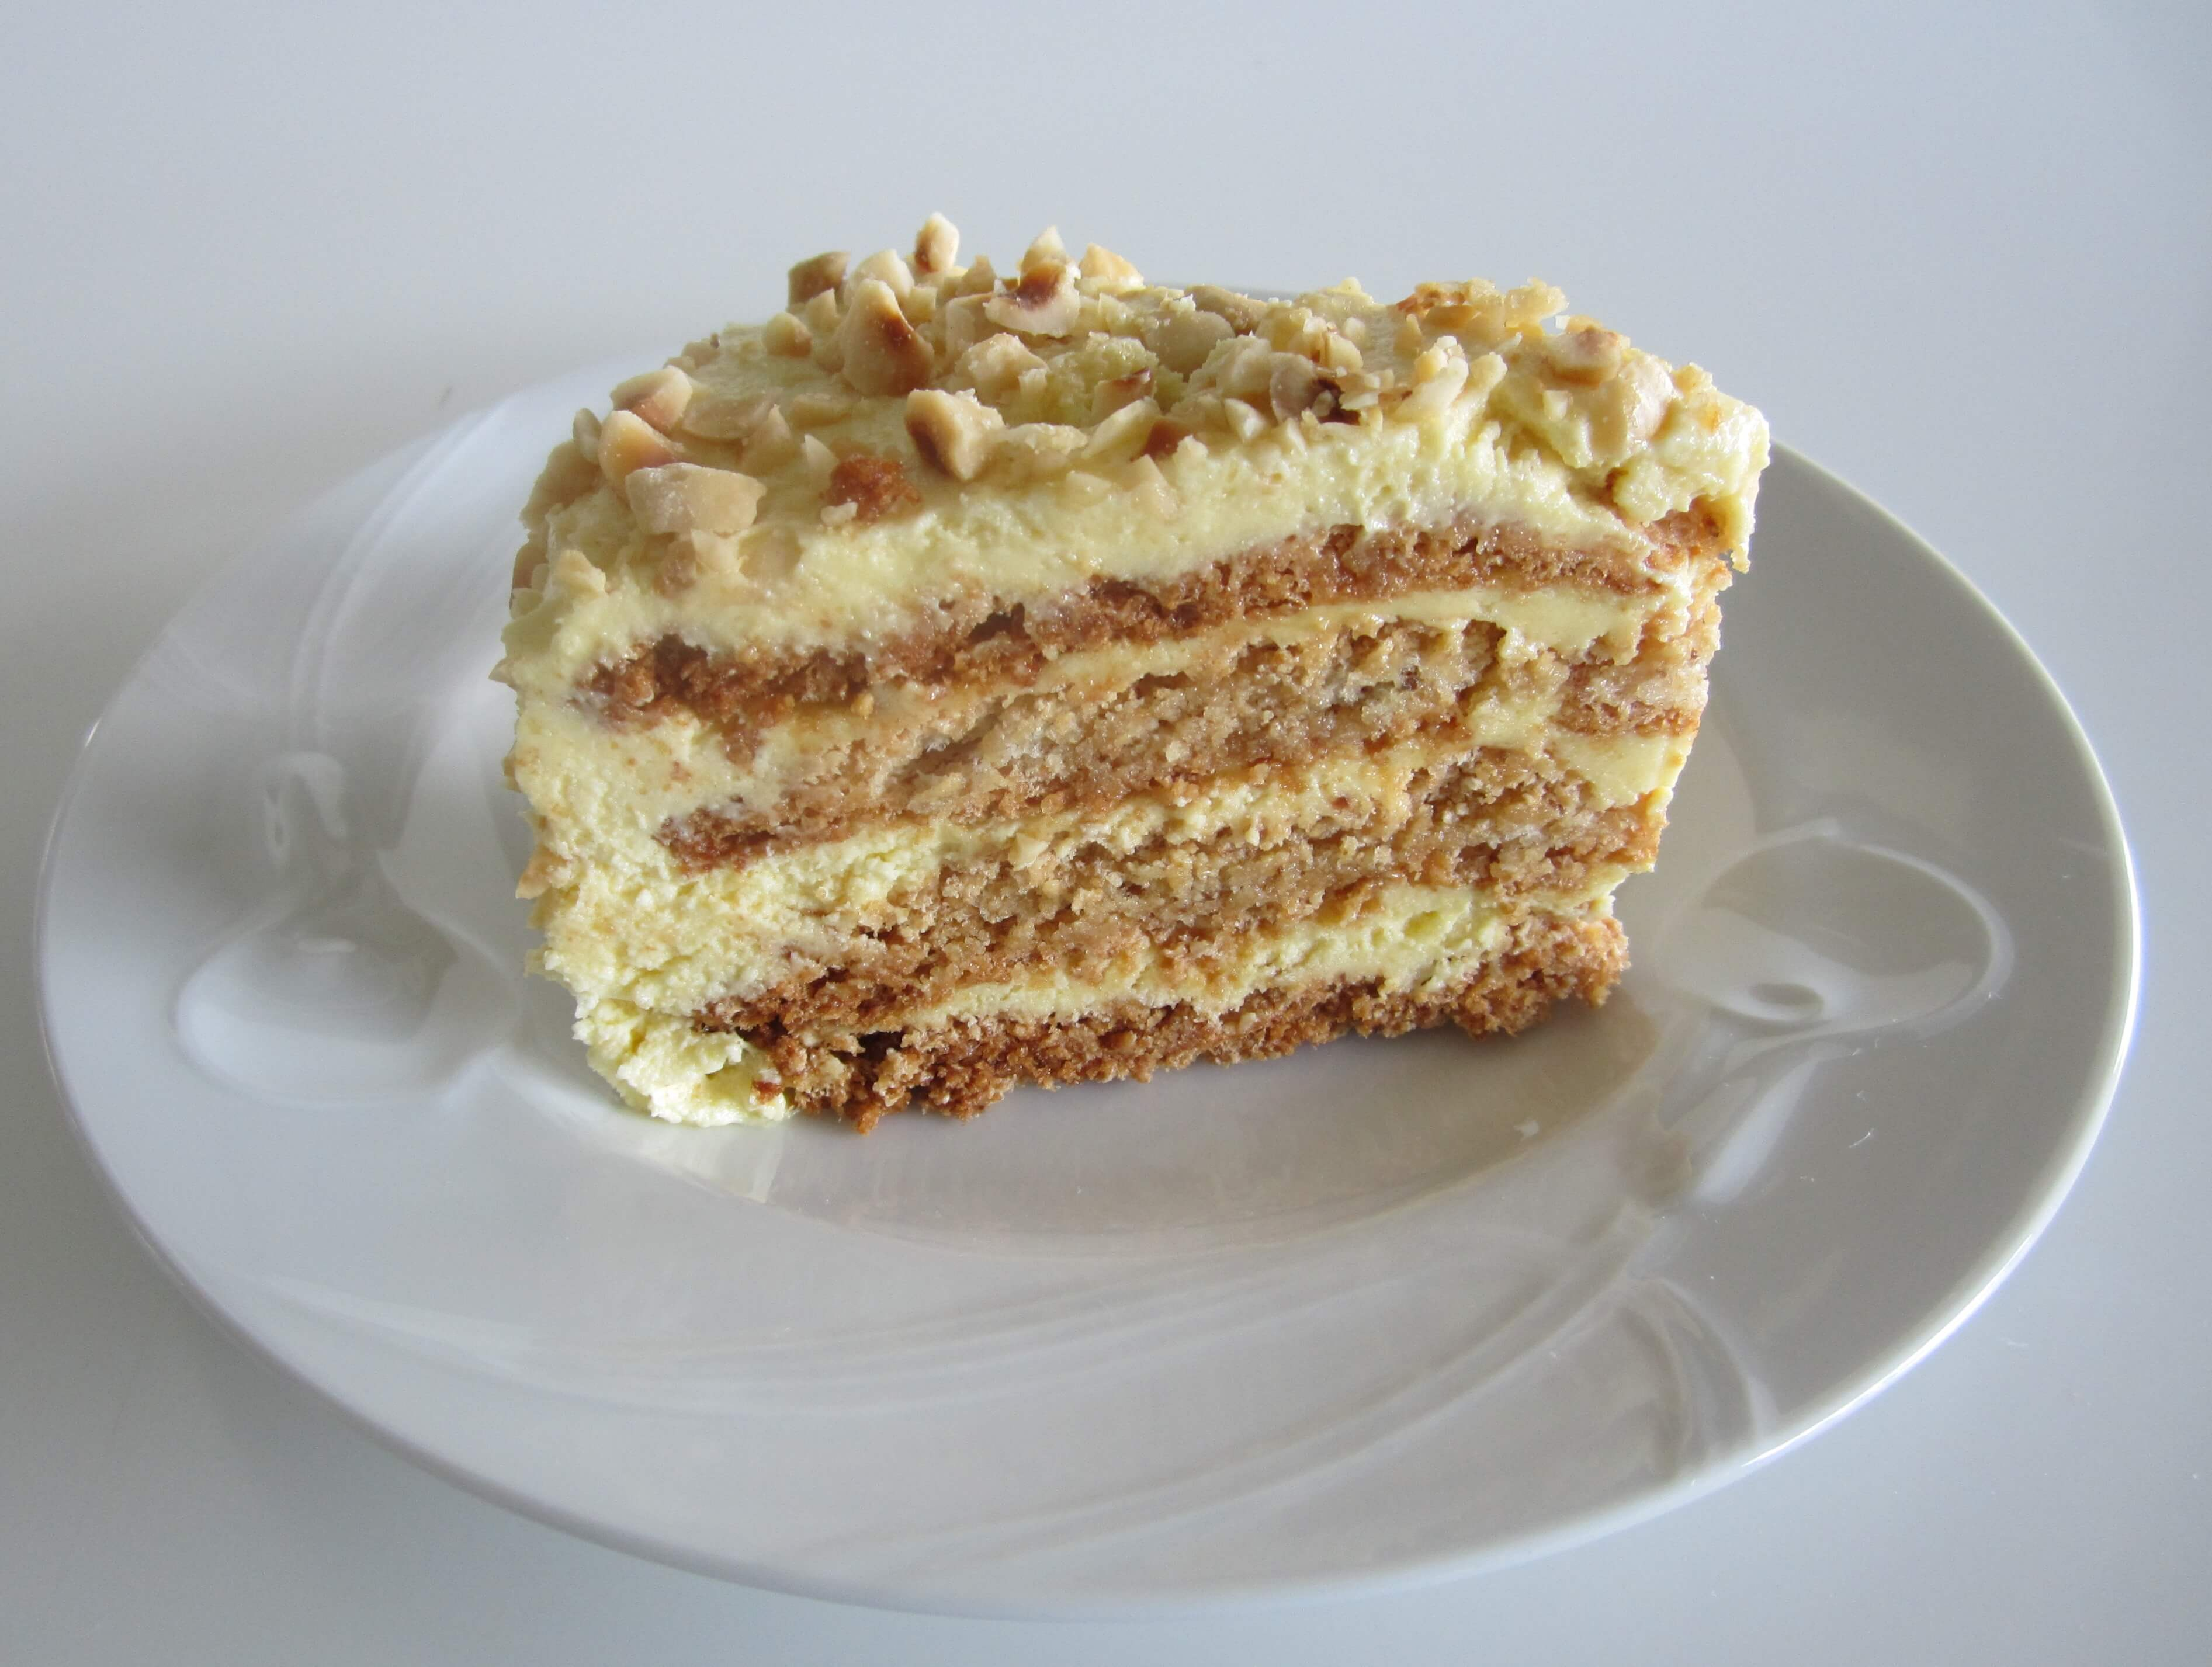 Hazelnut Cream Layer Cake